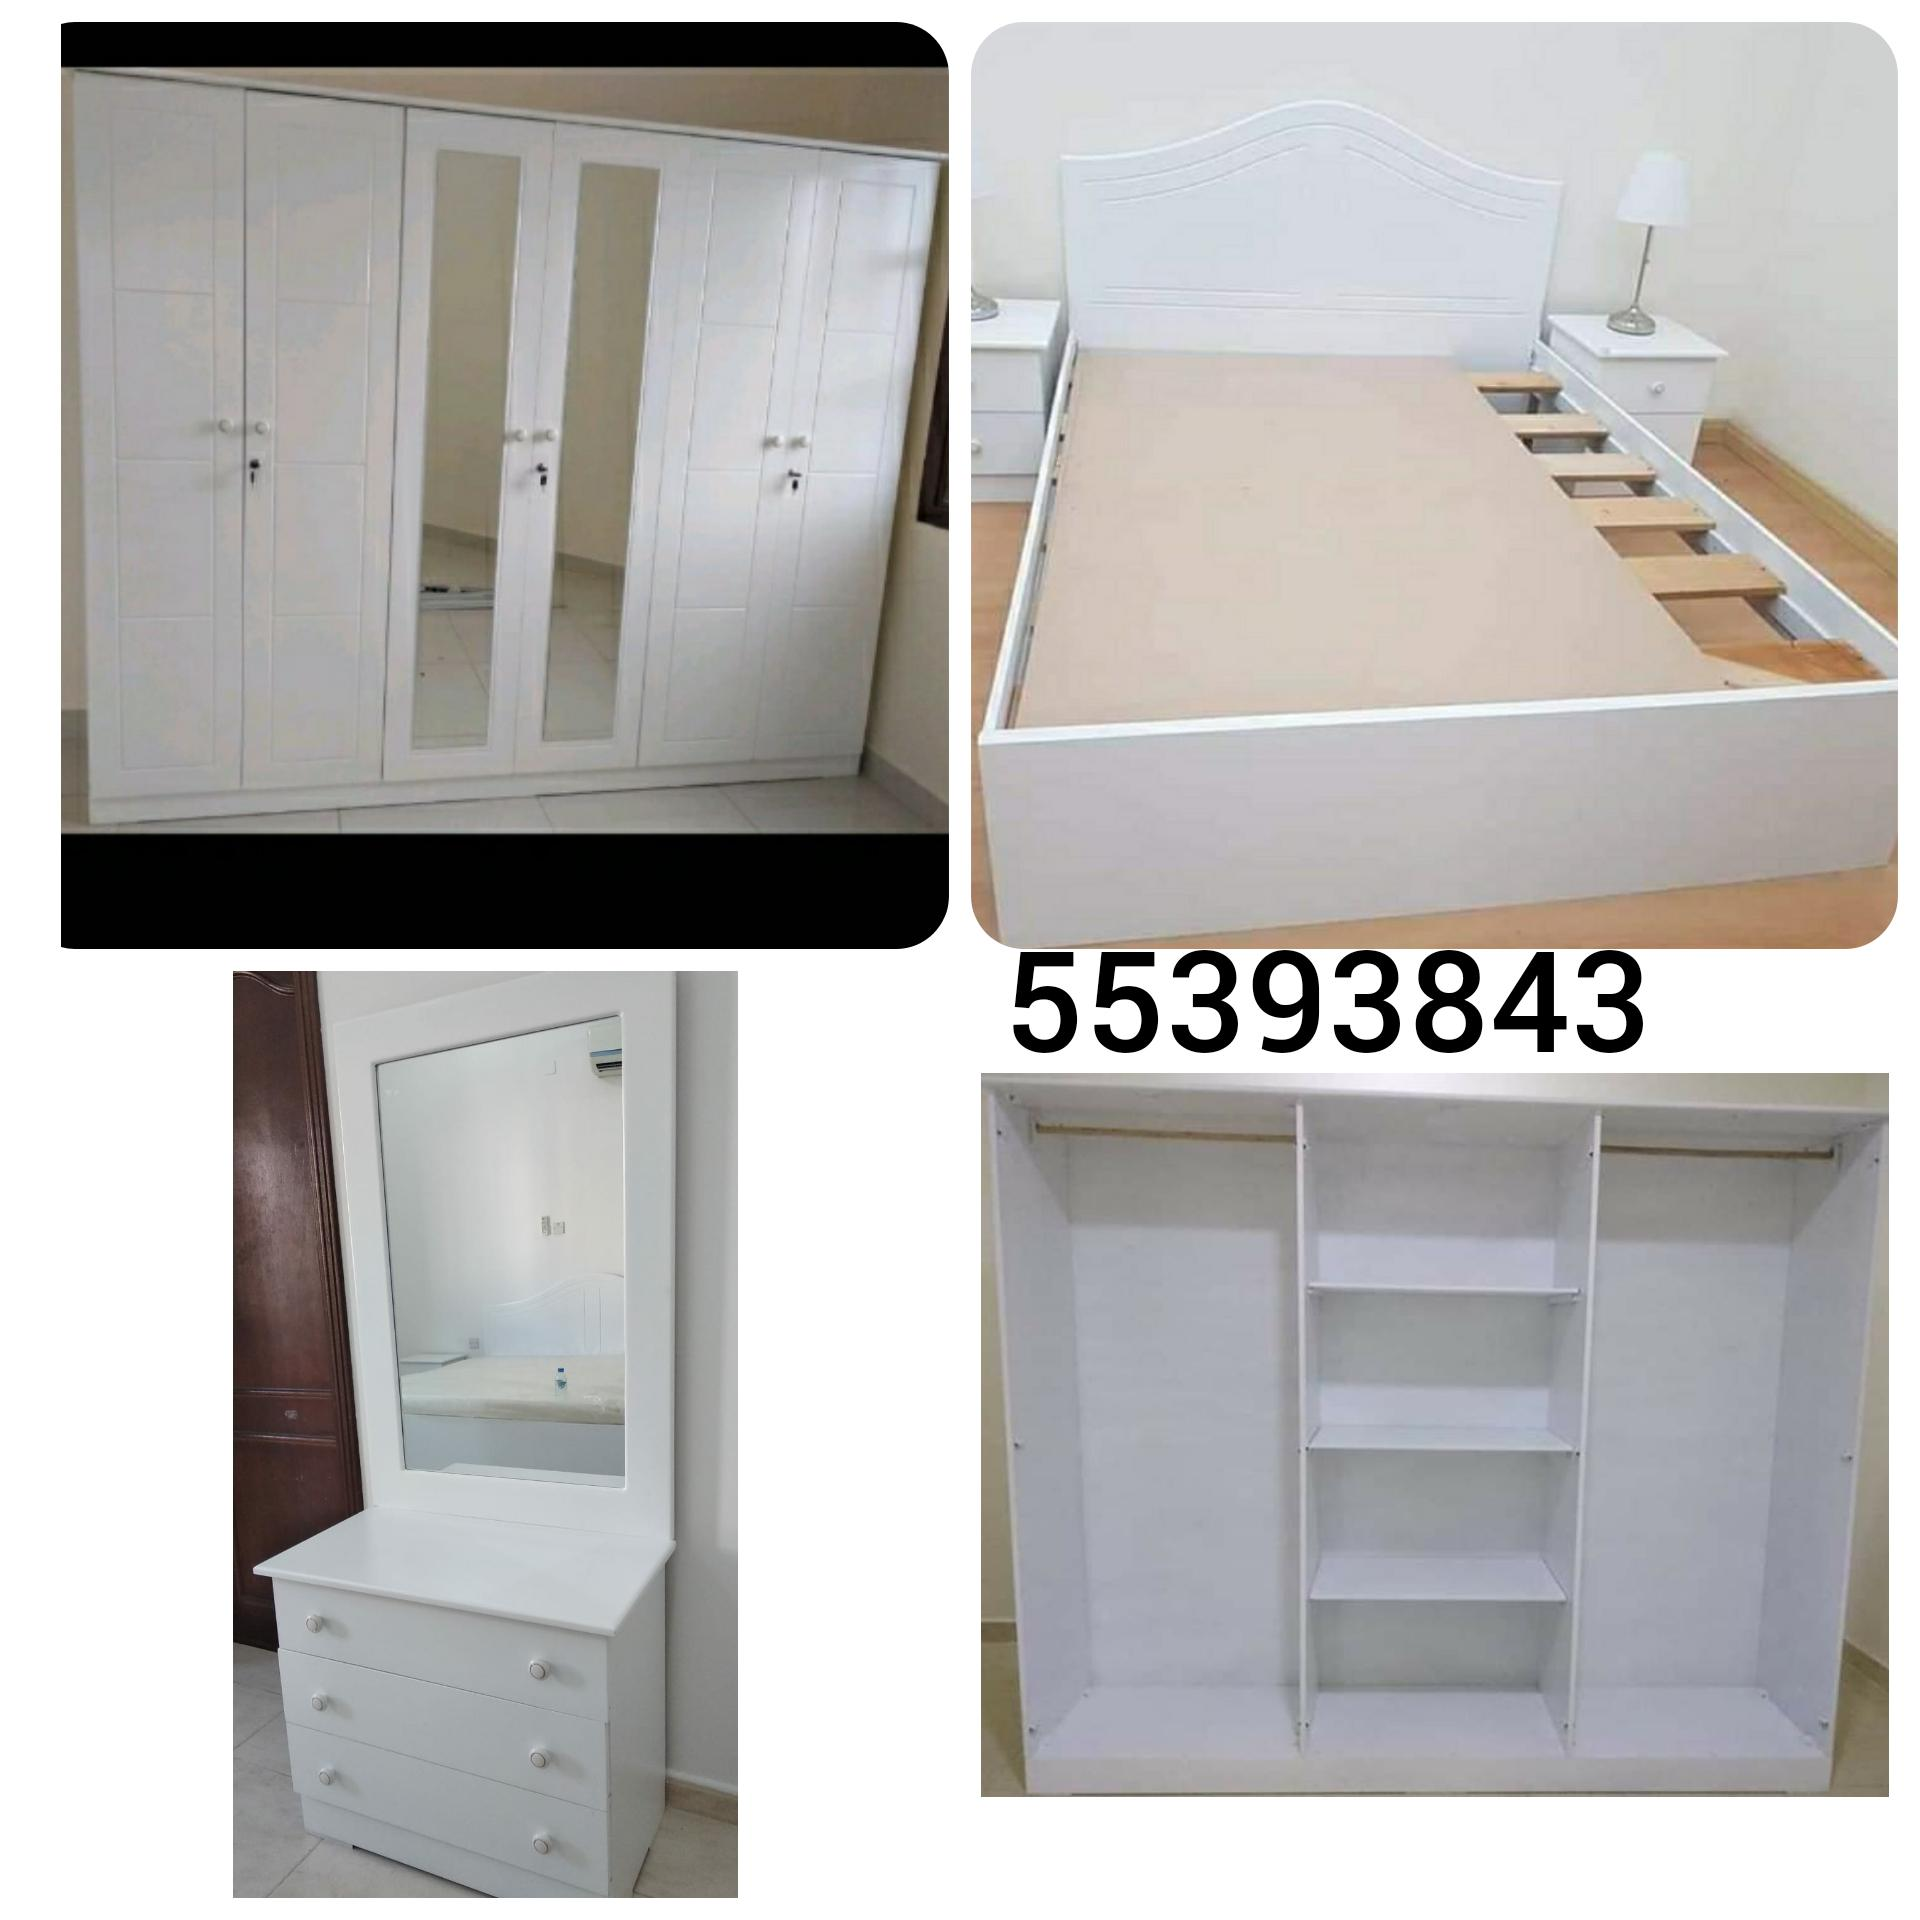 New Furniture sele with free delivery call 5539384